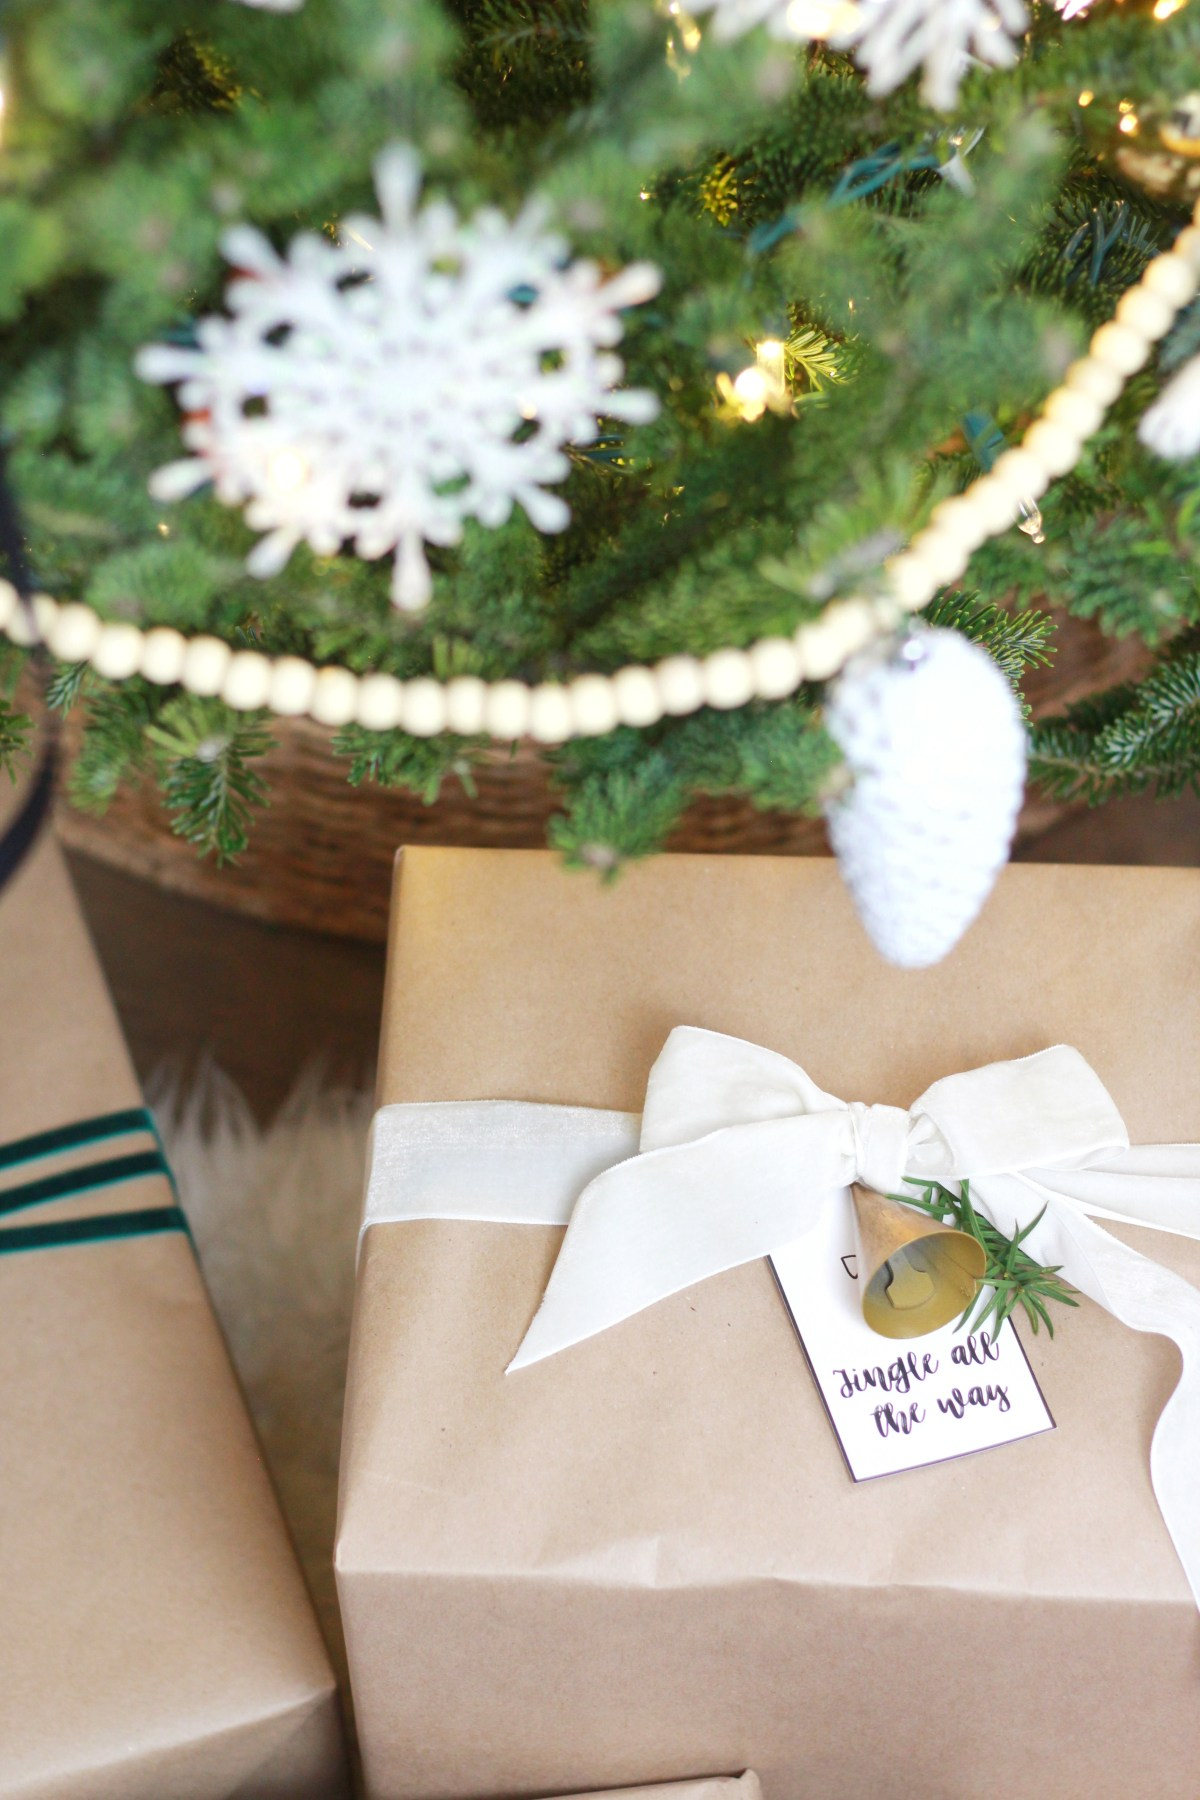 Wrap it up pretty with our free holiday gift tags